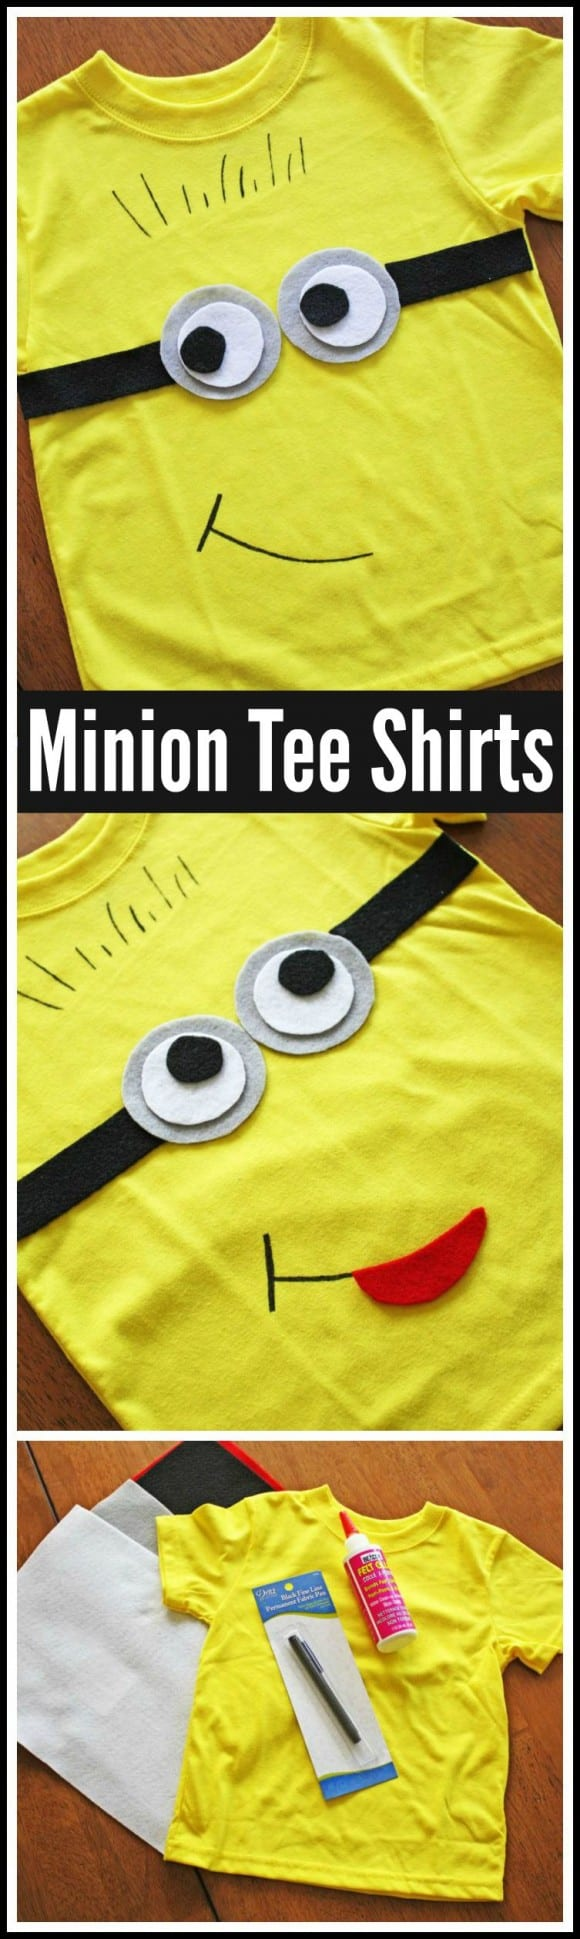 Minions Tee Shirt DIY. Make these as party favors or a party craft at your Minion birthday party! |CatchMyParty.com